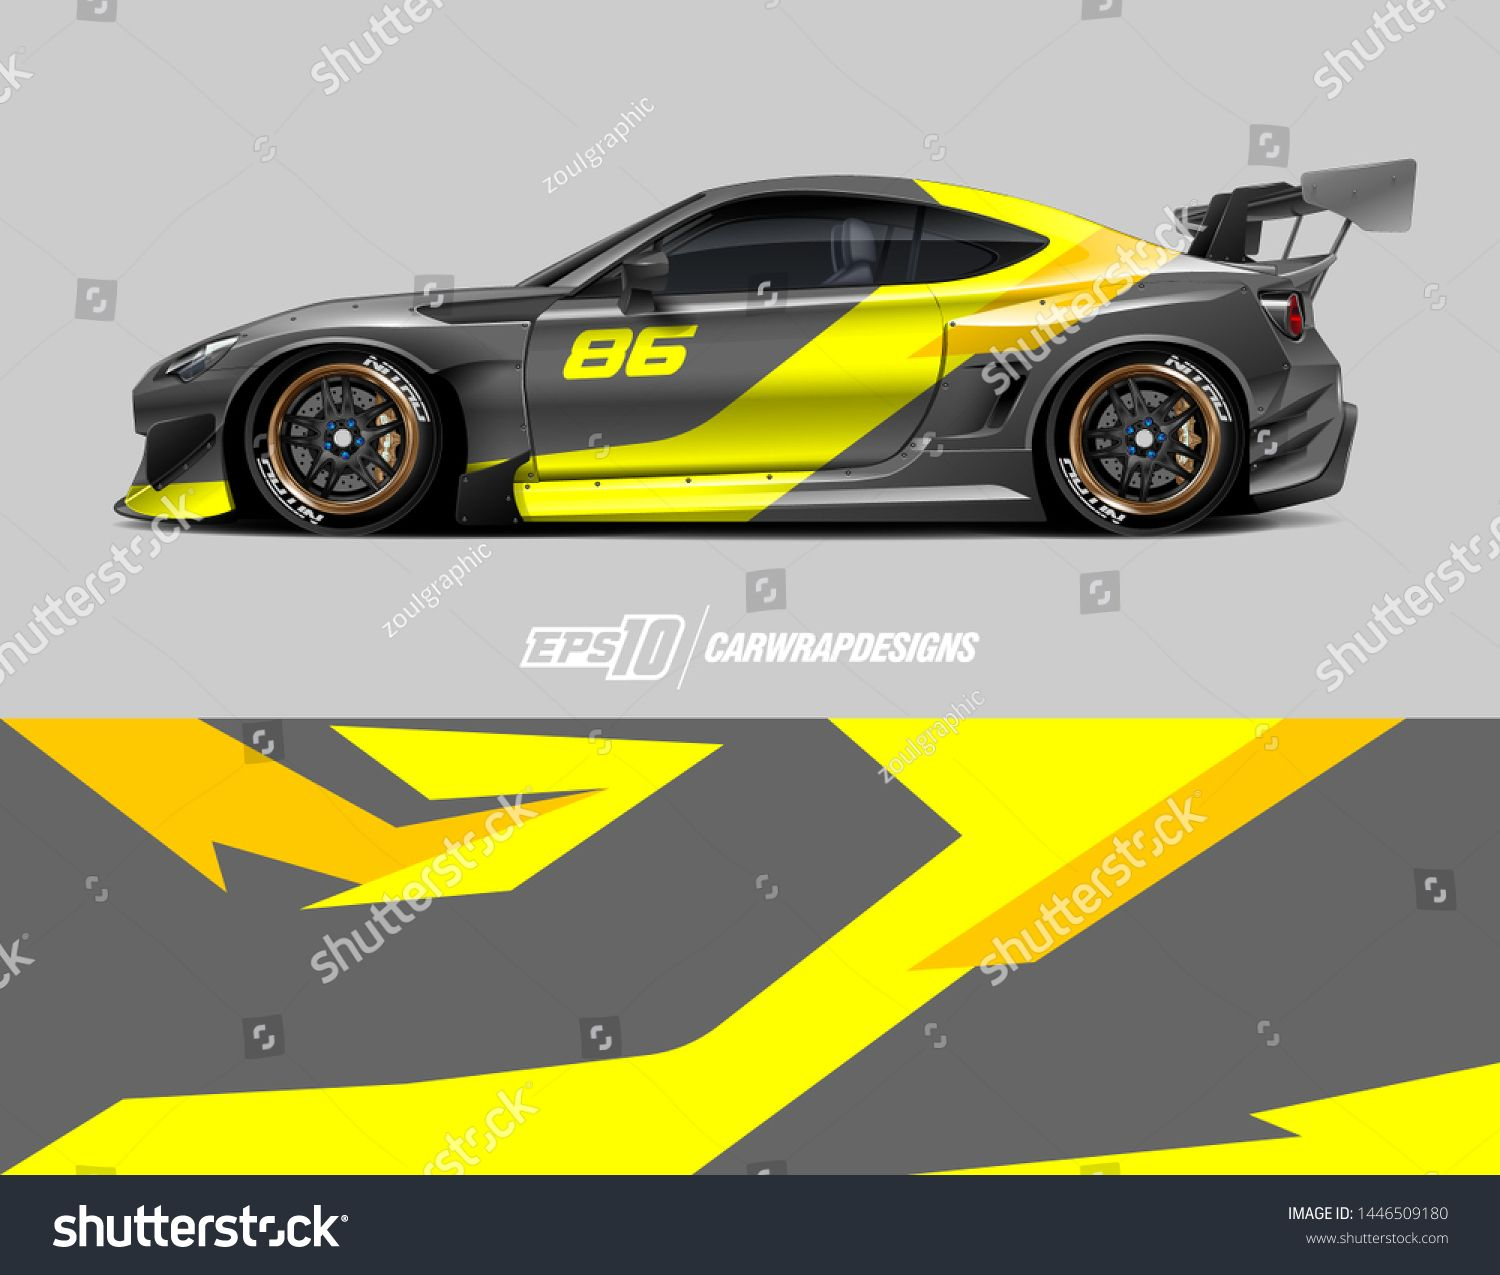 Car Wrap Design Concept Abstract Racing Background For Wrapping